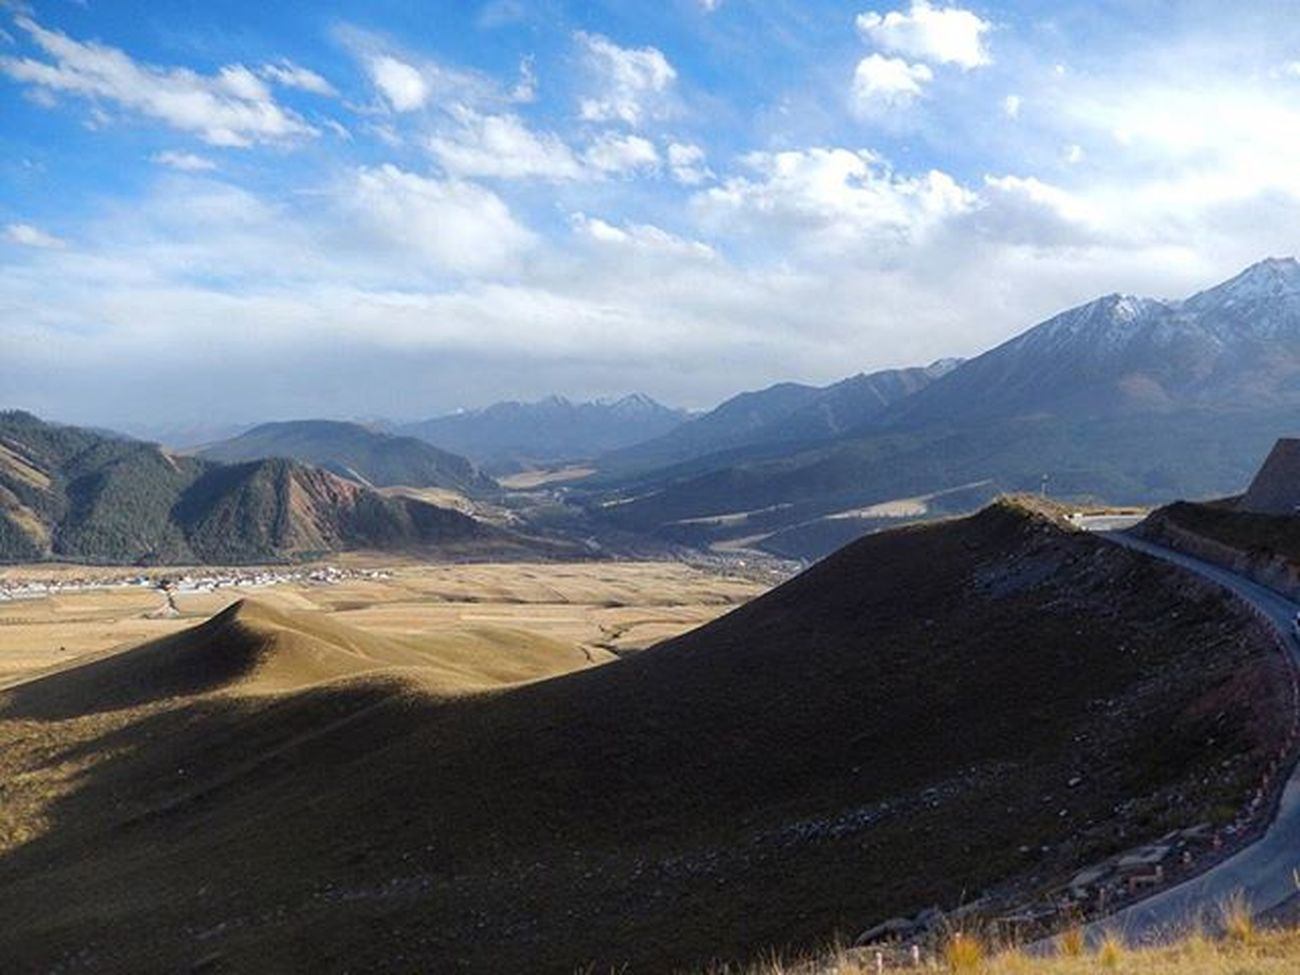 卓尔山 Chinamountain China Chinaview Qilian Qinghai Xiongnu